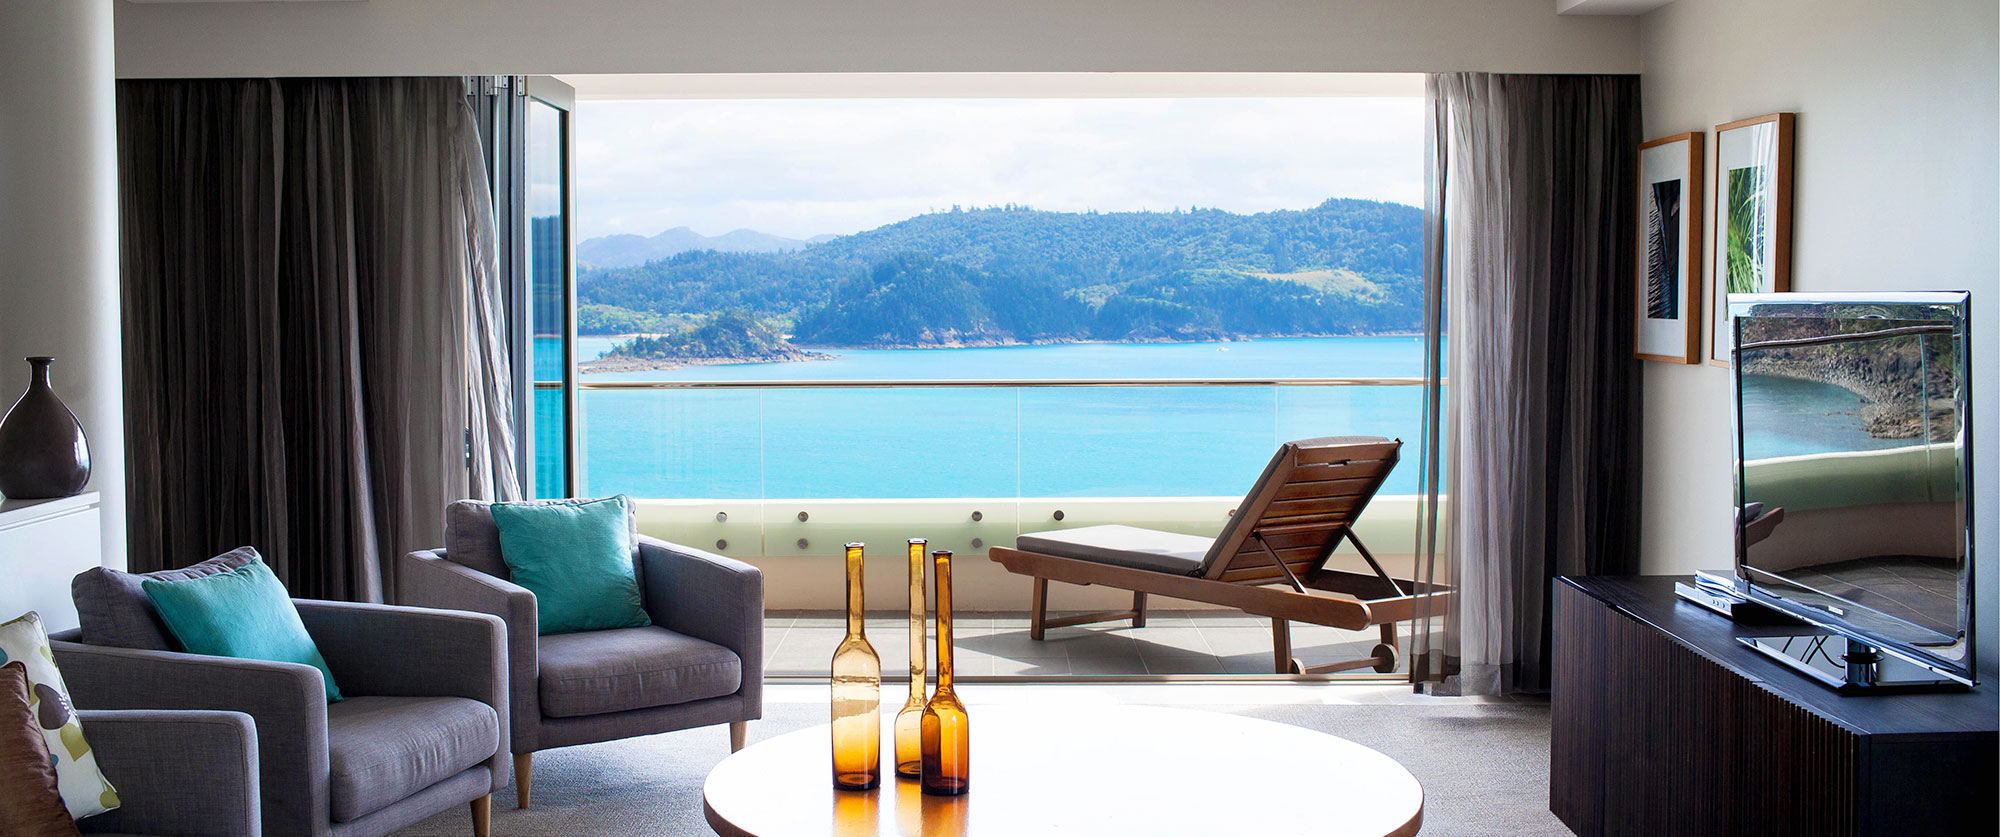 Australia Vacations - Great Barrier Reef Places to Stay - Reef View Hotel Whitsundays